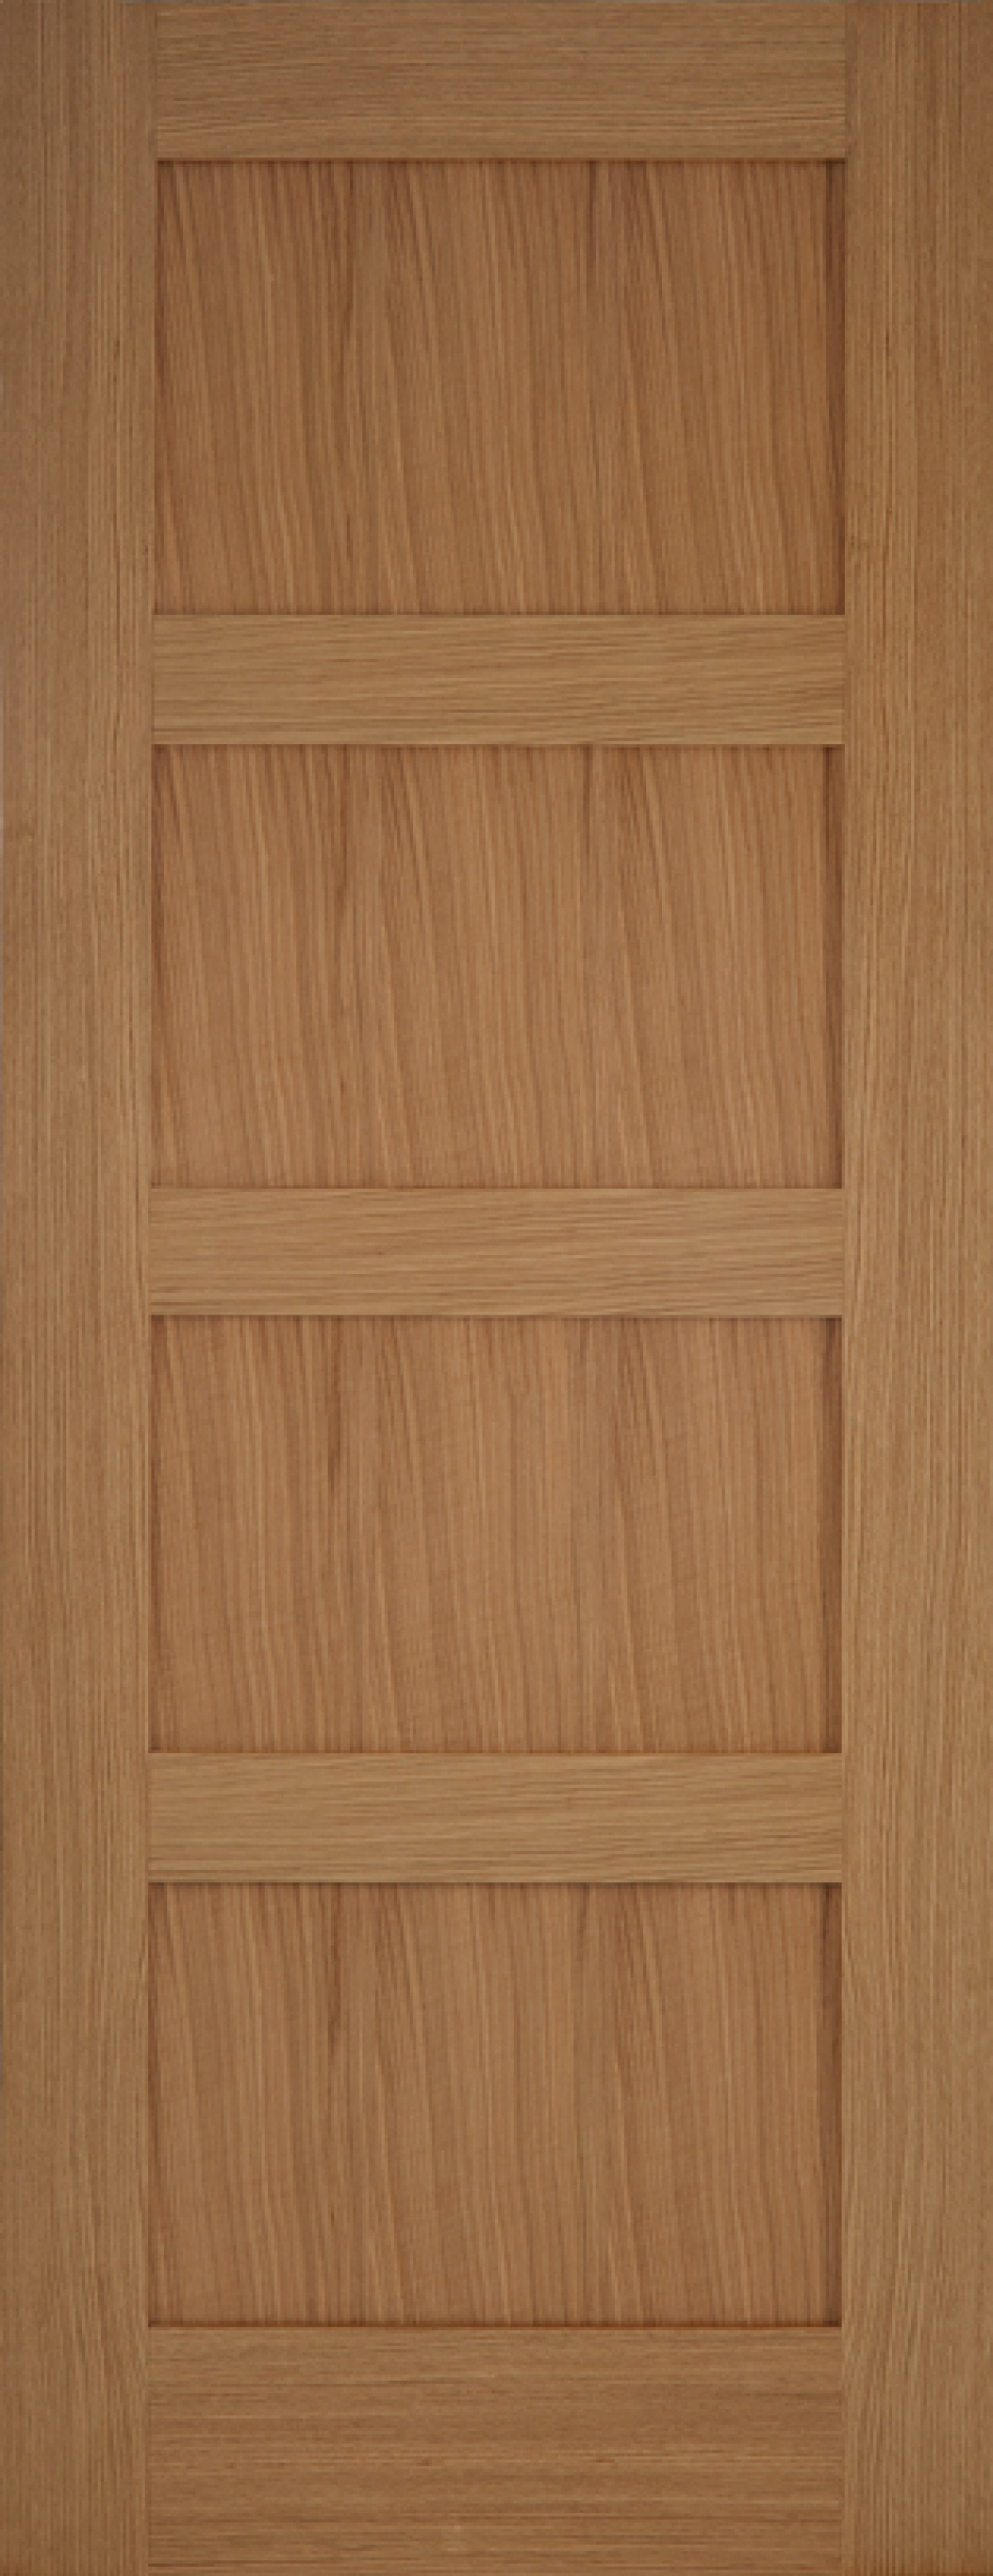 Oak Contemporary 4 Panel - PM Mendes